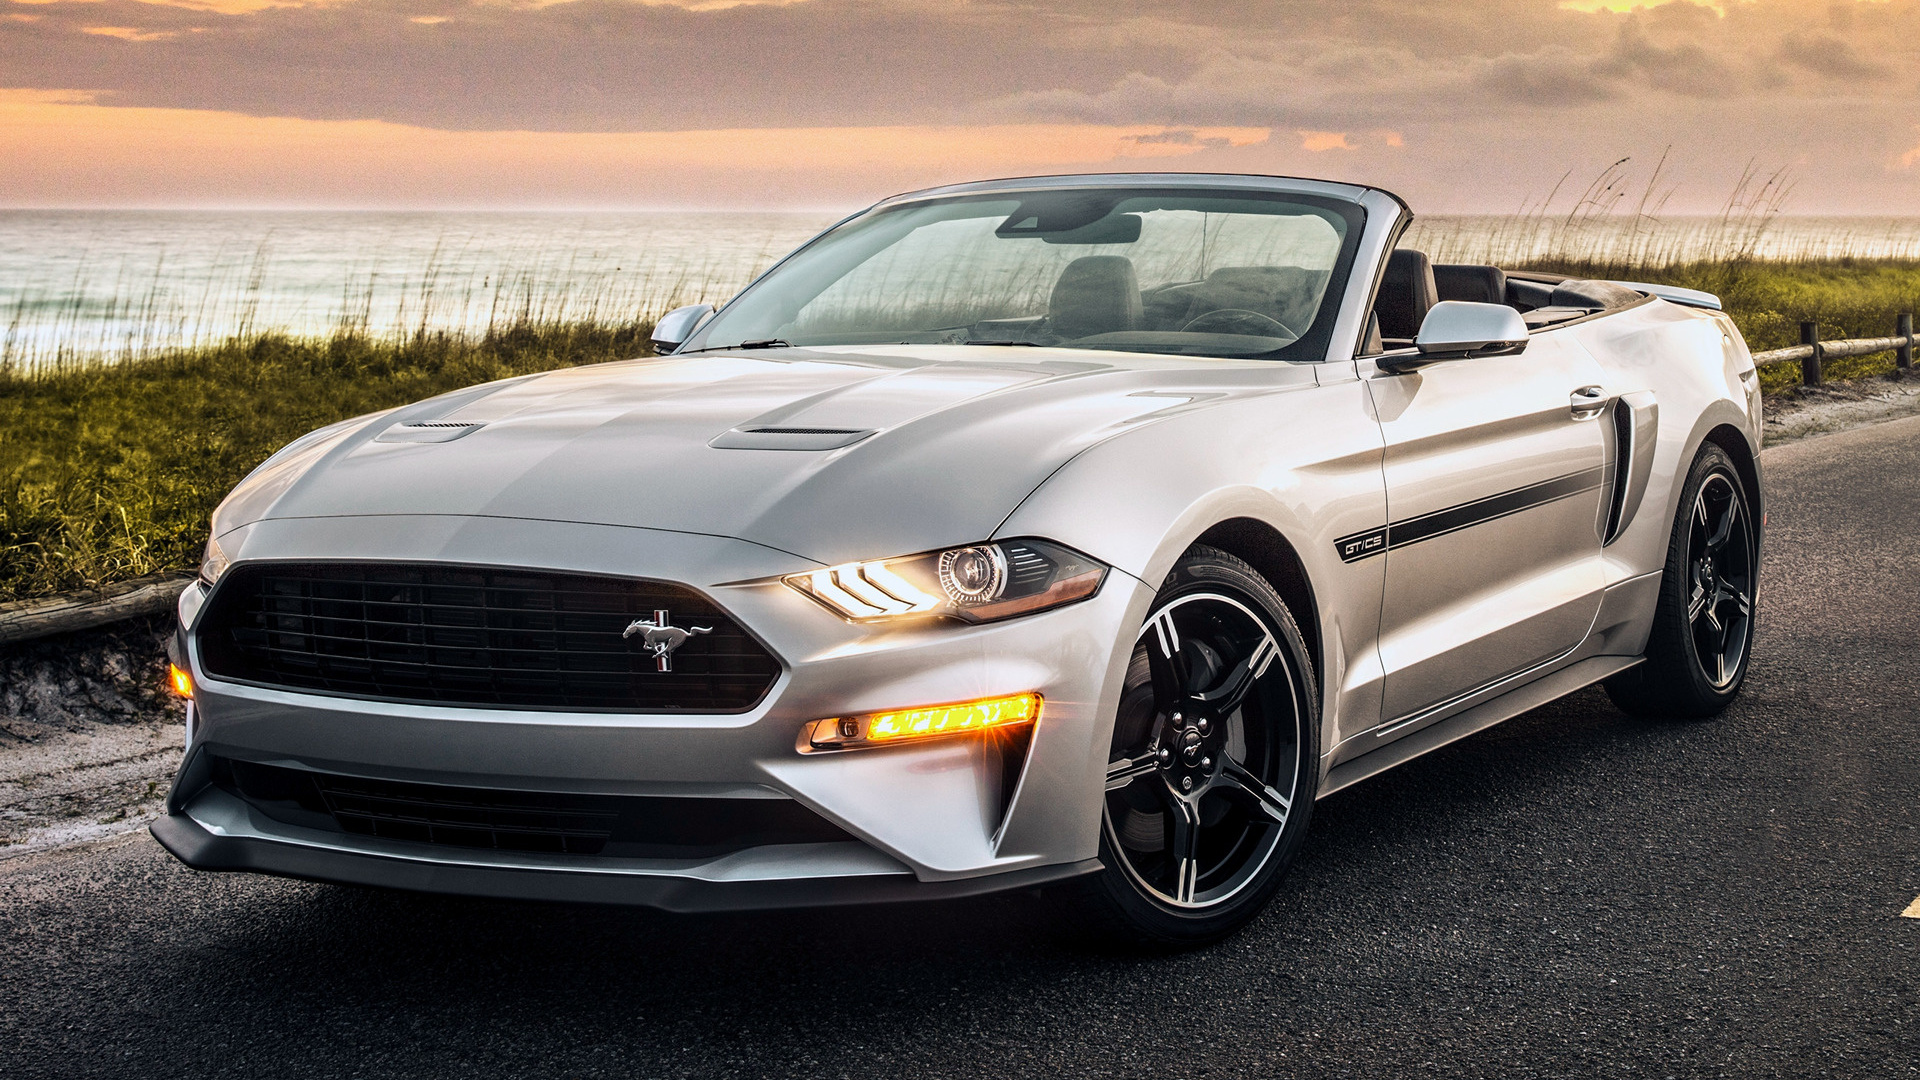 Ford Mustang GT Convertible California Special 2019